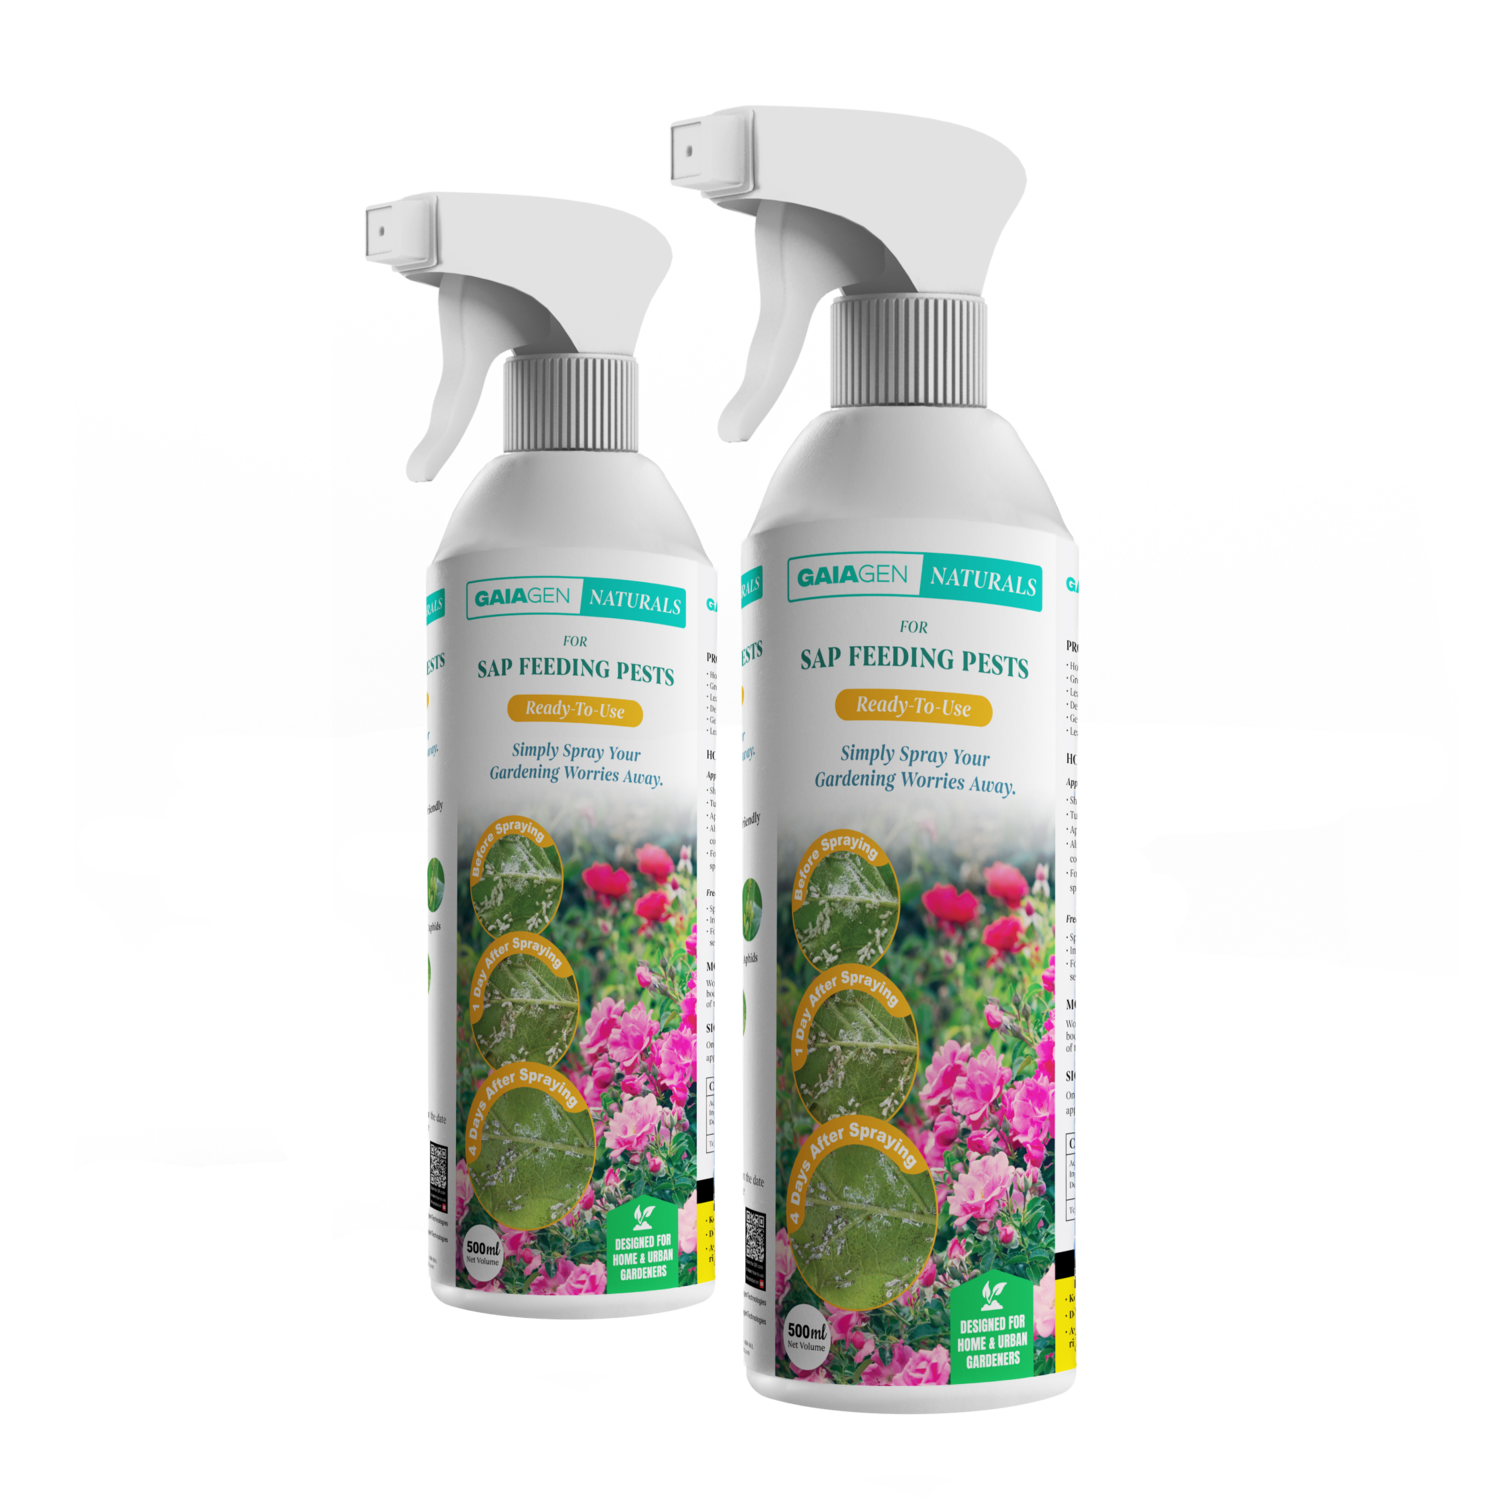 Gaiagen Naturals for Sap Feeding Pests (Ready-To-Use)   500ml   (Pack of 2)